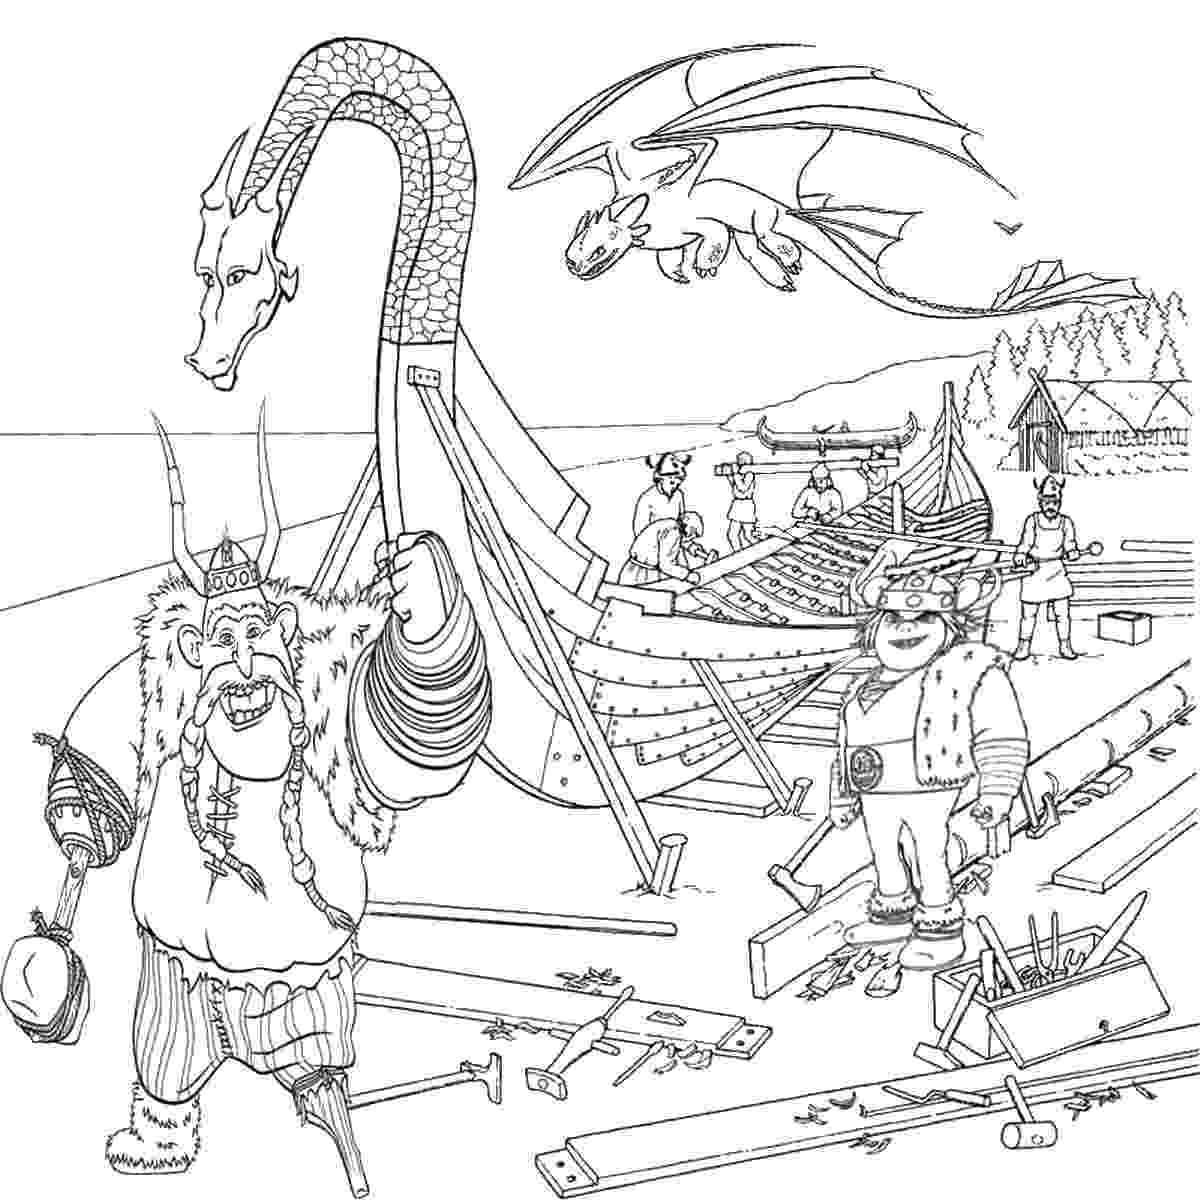 how to train your dragon colouring how to train your dragon coloring pages for kids to print colouring dragon your to train how